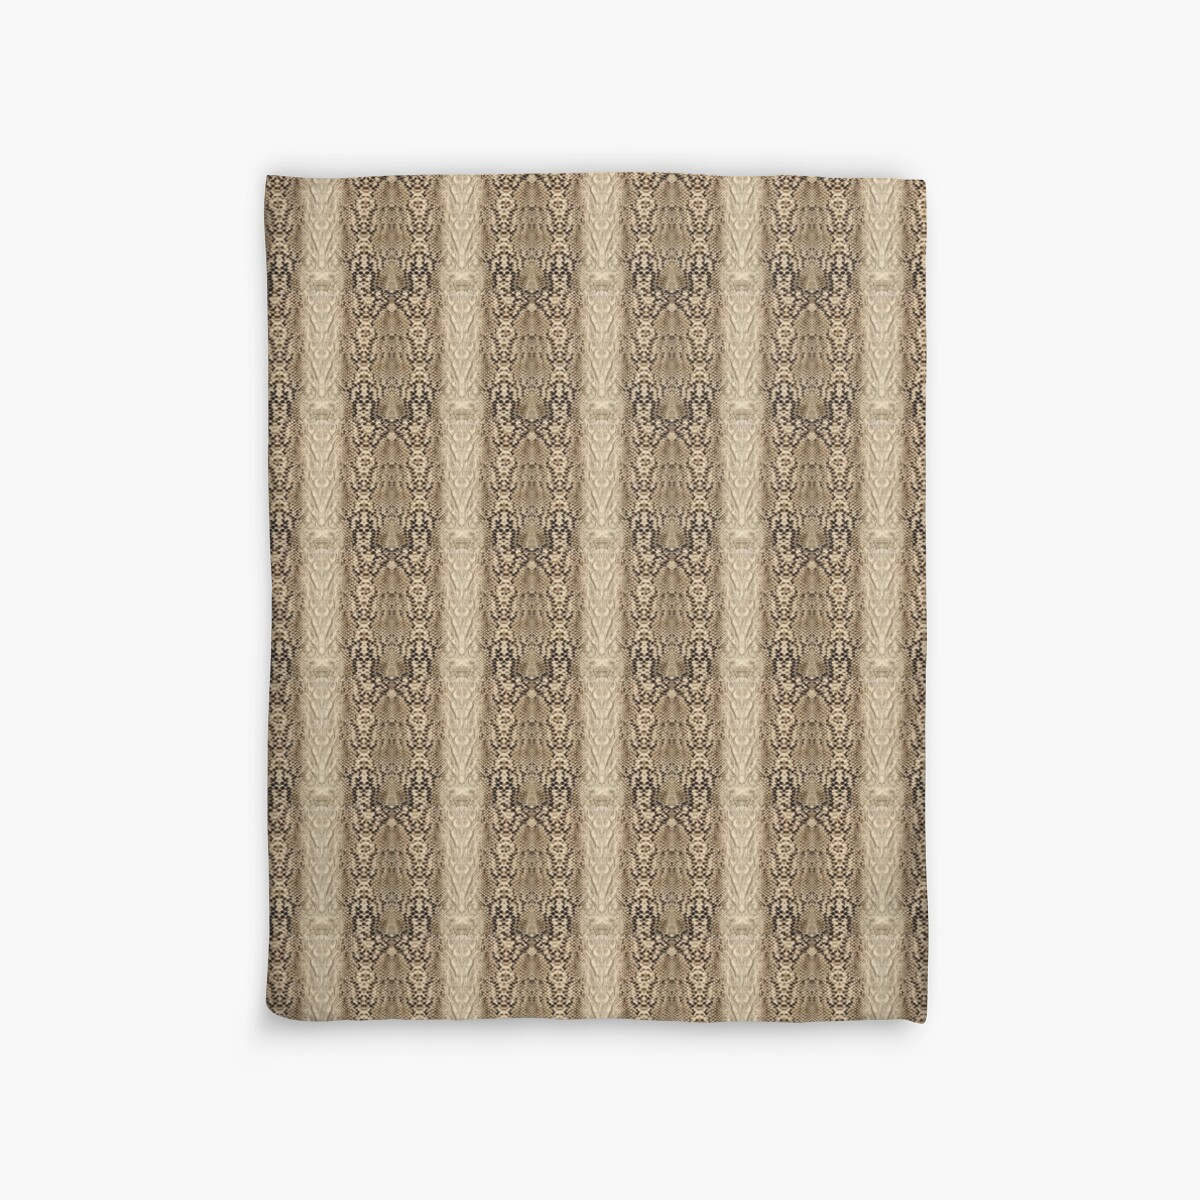 Quot Brown And Beige Faux Snake Skin Pattern Quot Duvet Covers By